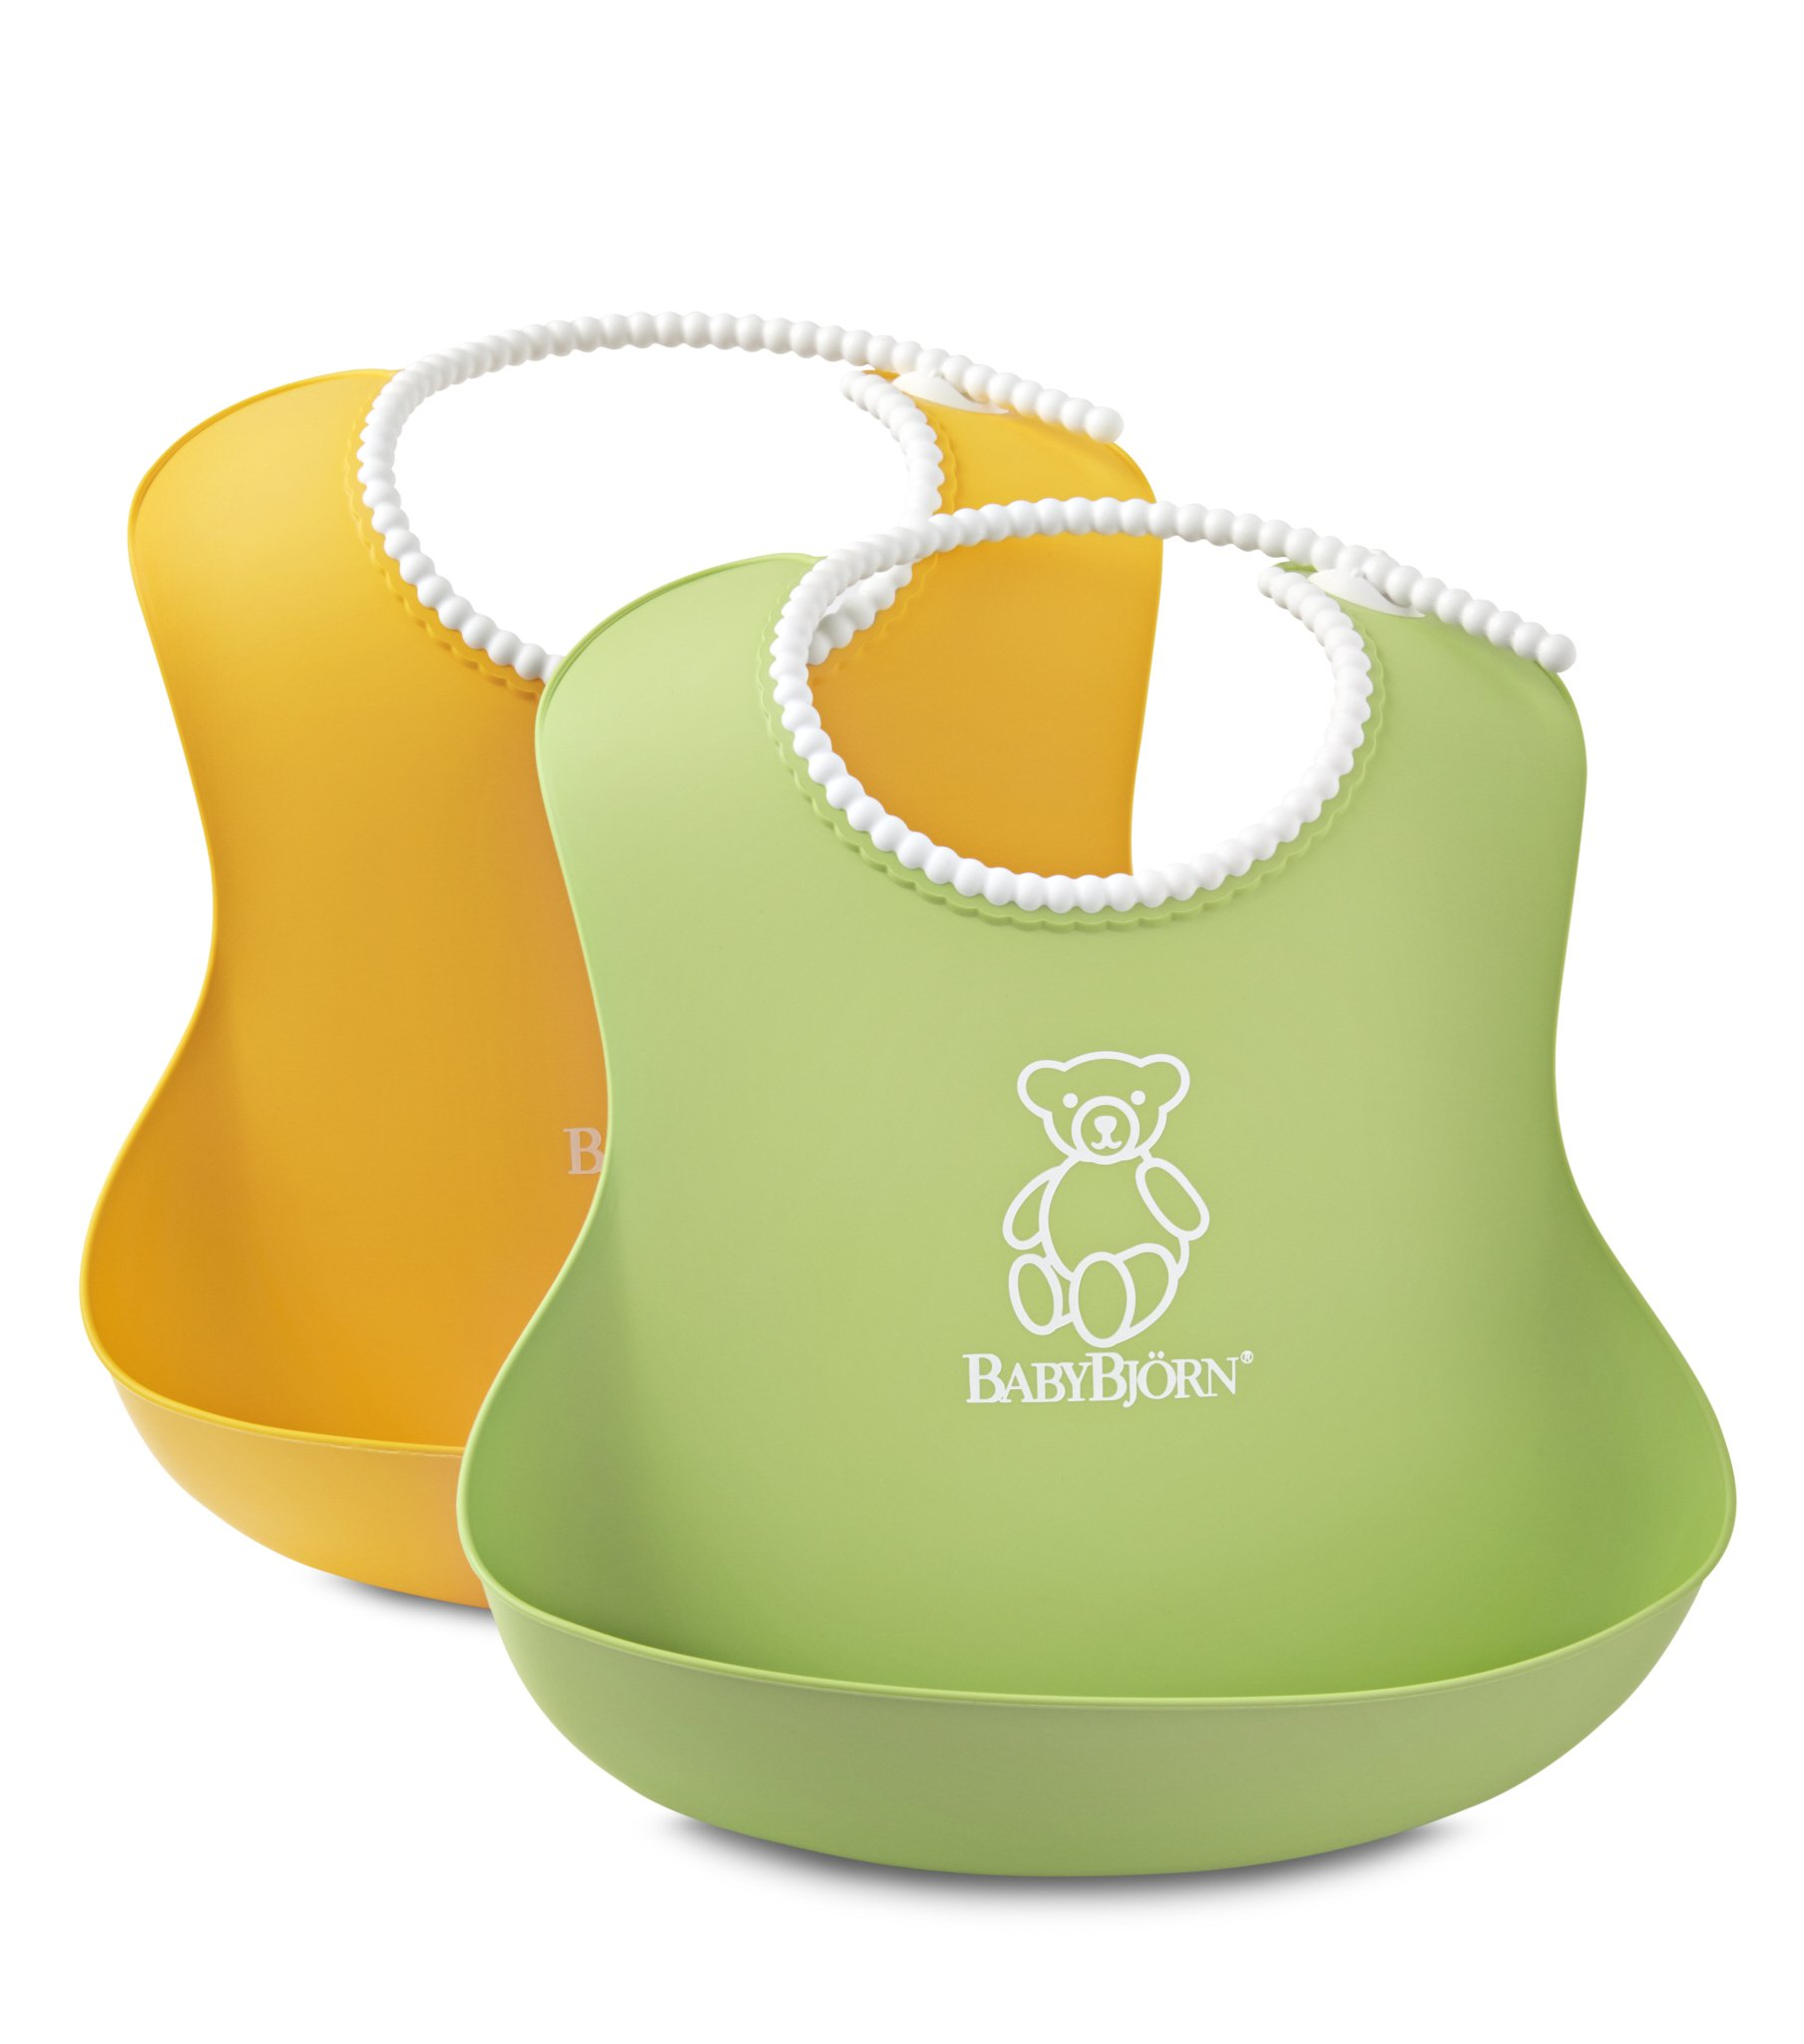 BABYBJORN Soft Bib - Green/Yellow 2 pack